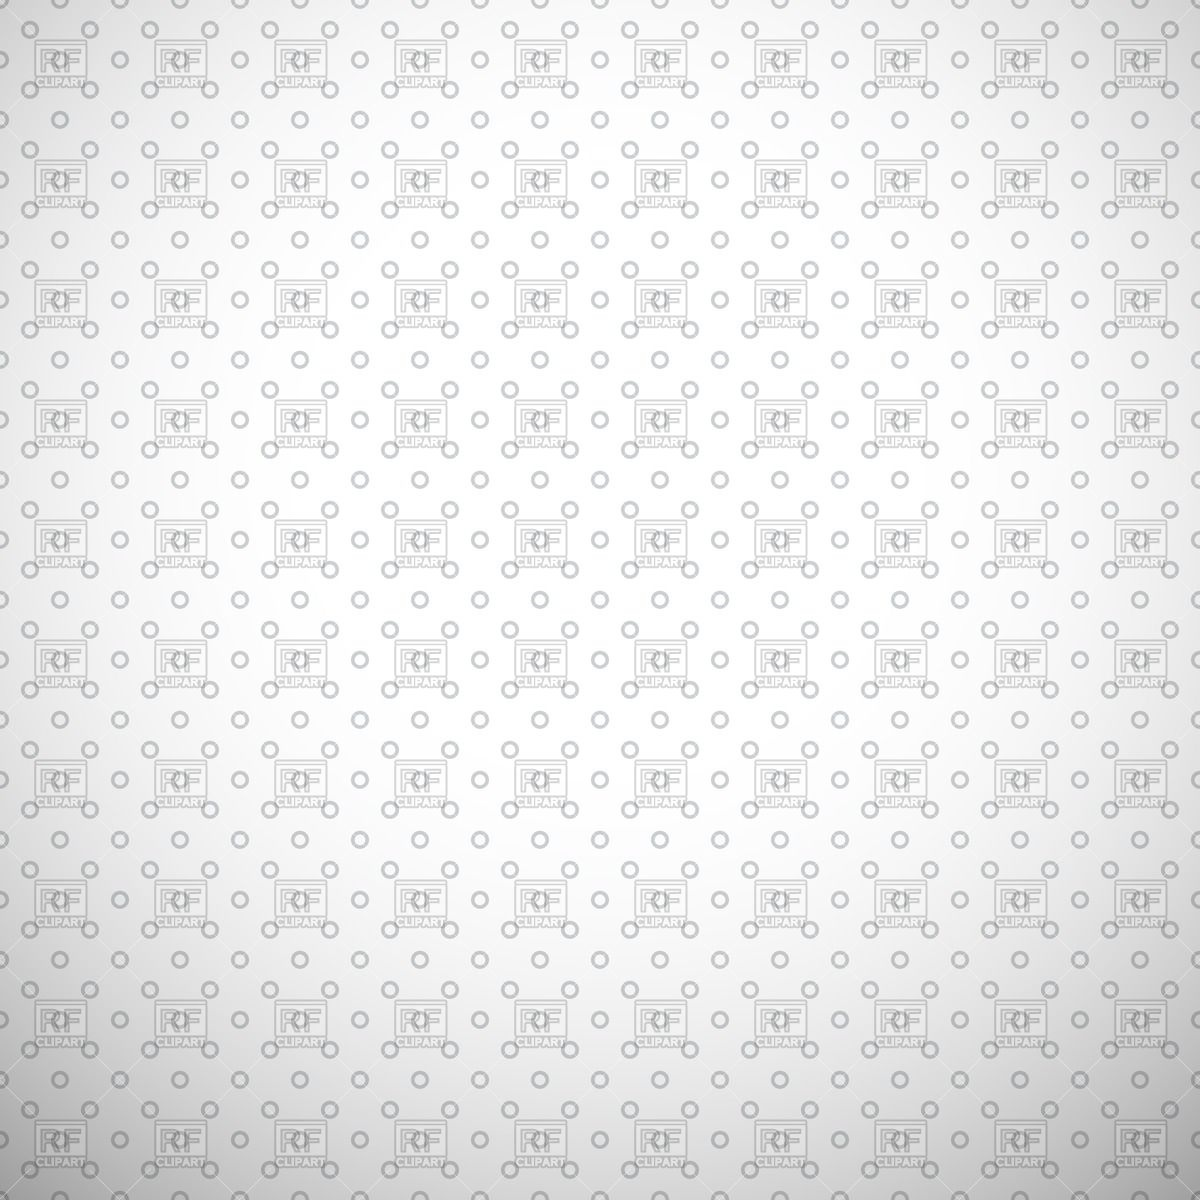 Light grey simple background Vector Image #64180.